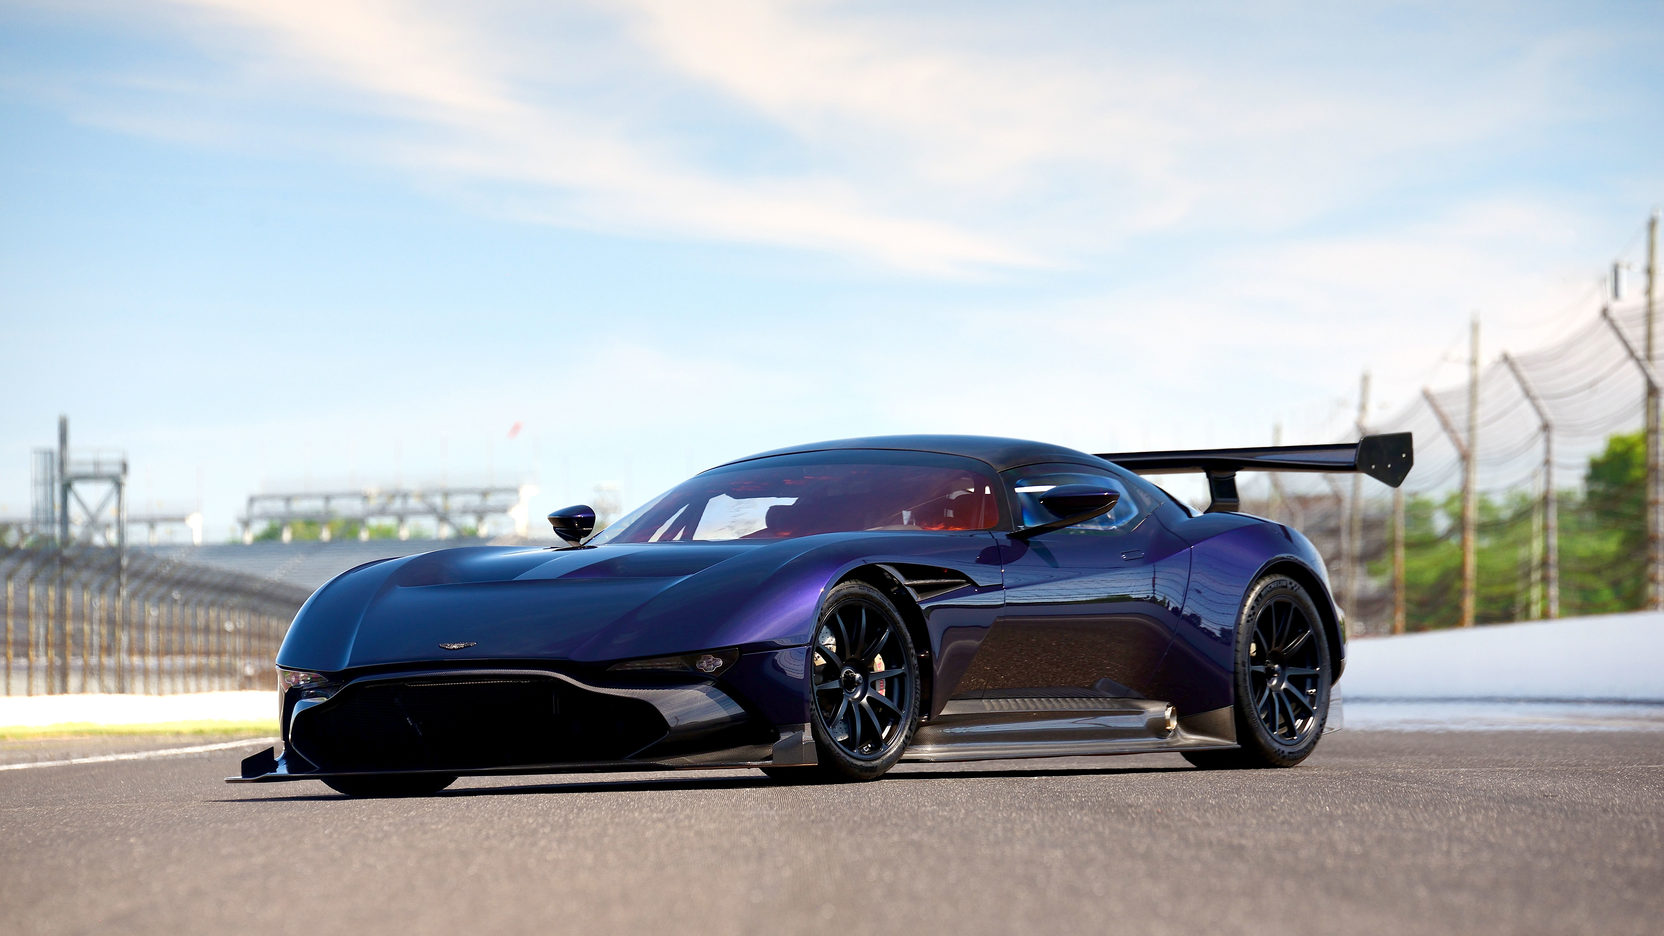 hight resolution of there s an aston martin vulcan for sale for 2 4million